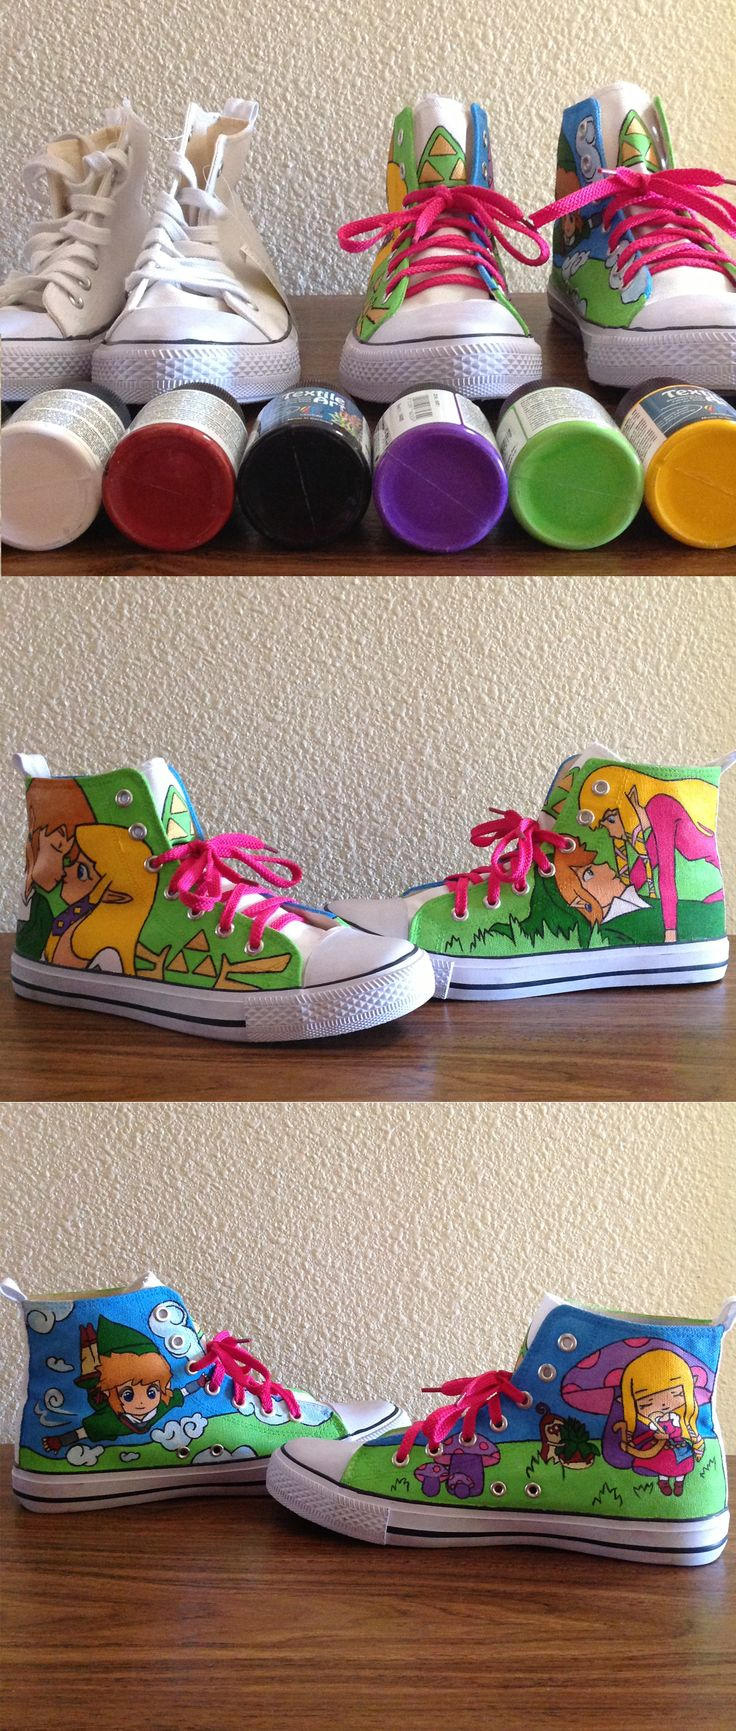 My customized canvas shoes are finished after two days working on it! The legend of Zelda: Skyward sword. Cute and chibi. Link Zelda Nintendo  Mis zapatillas personalizadas con magia :)